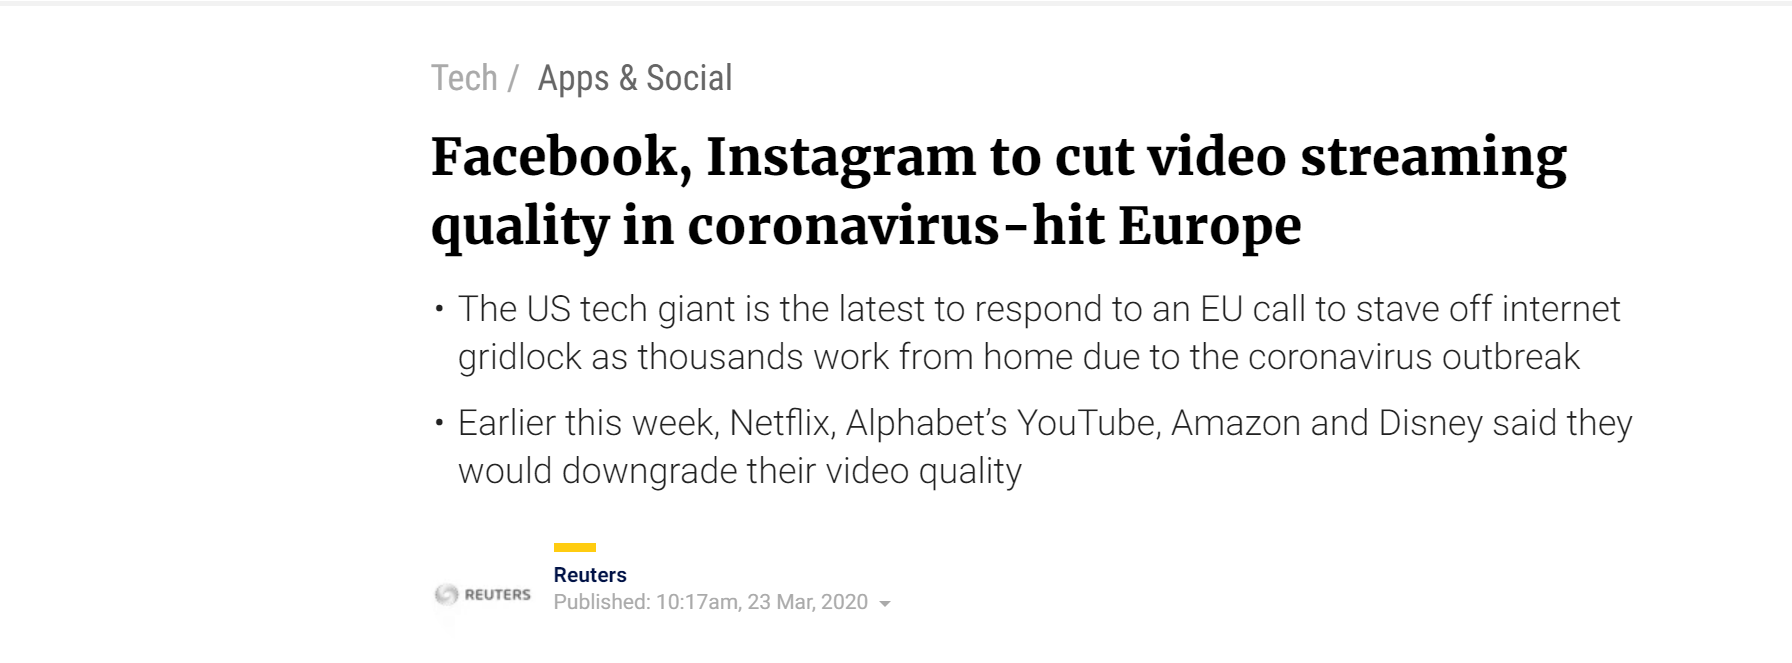 YouTube, Netflix and Facebook have announced that they will scale down video streaming quality to standard definition to control the bandwidth during the coronavirus outbreak